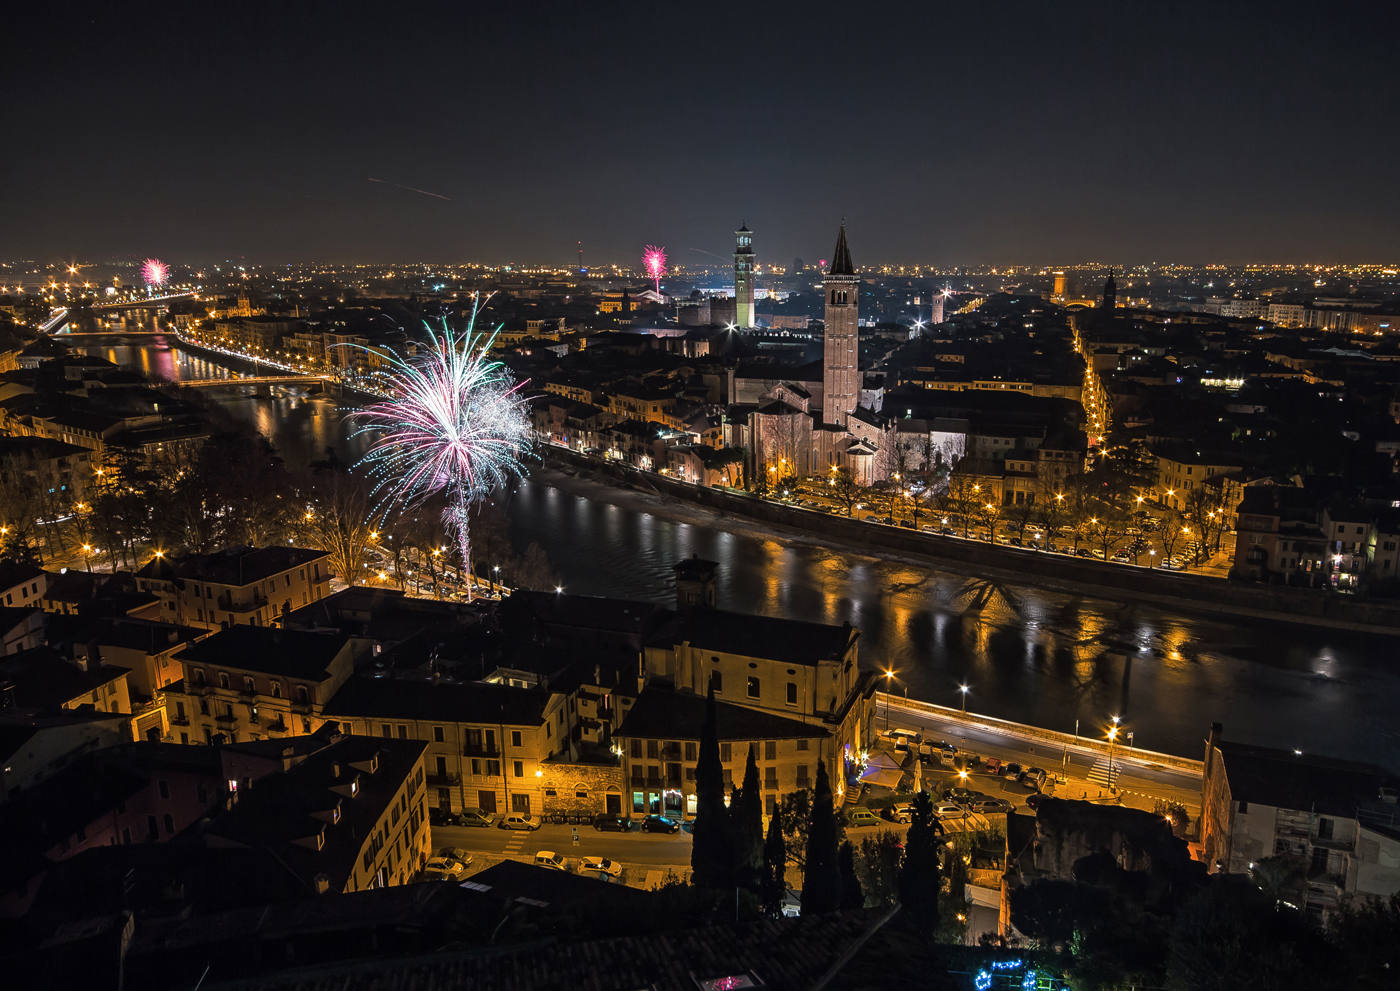 COLOUR PRINT               Div3	1st	MIDNIGHT IN VERONA	GIORGIA DE PAOLI